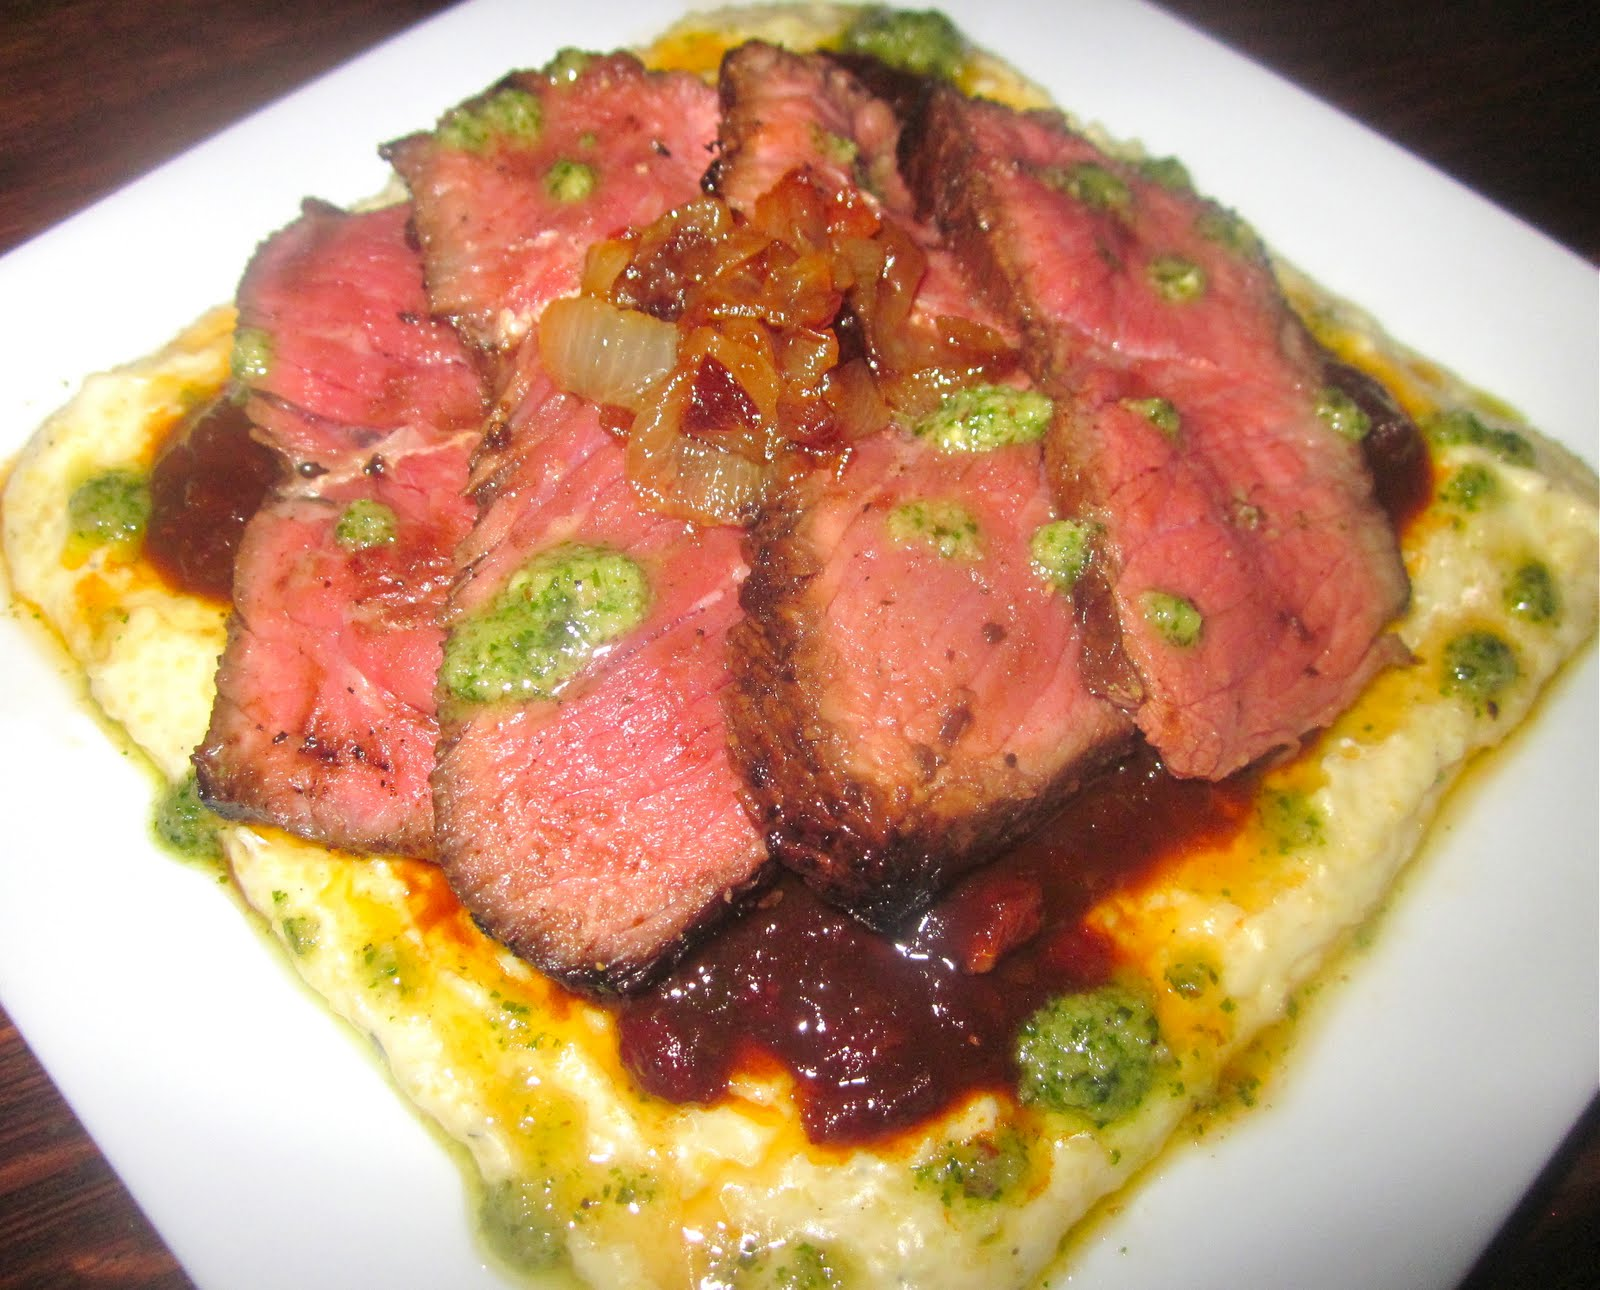 Seared Steak & Goat Cheese Polenta with Balsamic-Sun Dried Tomato Jam